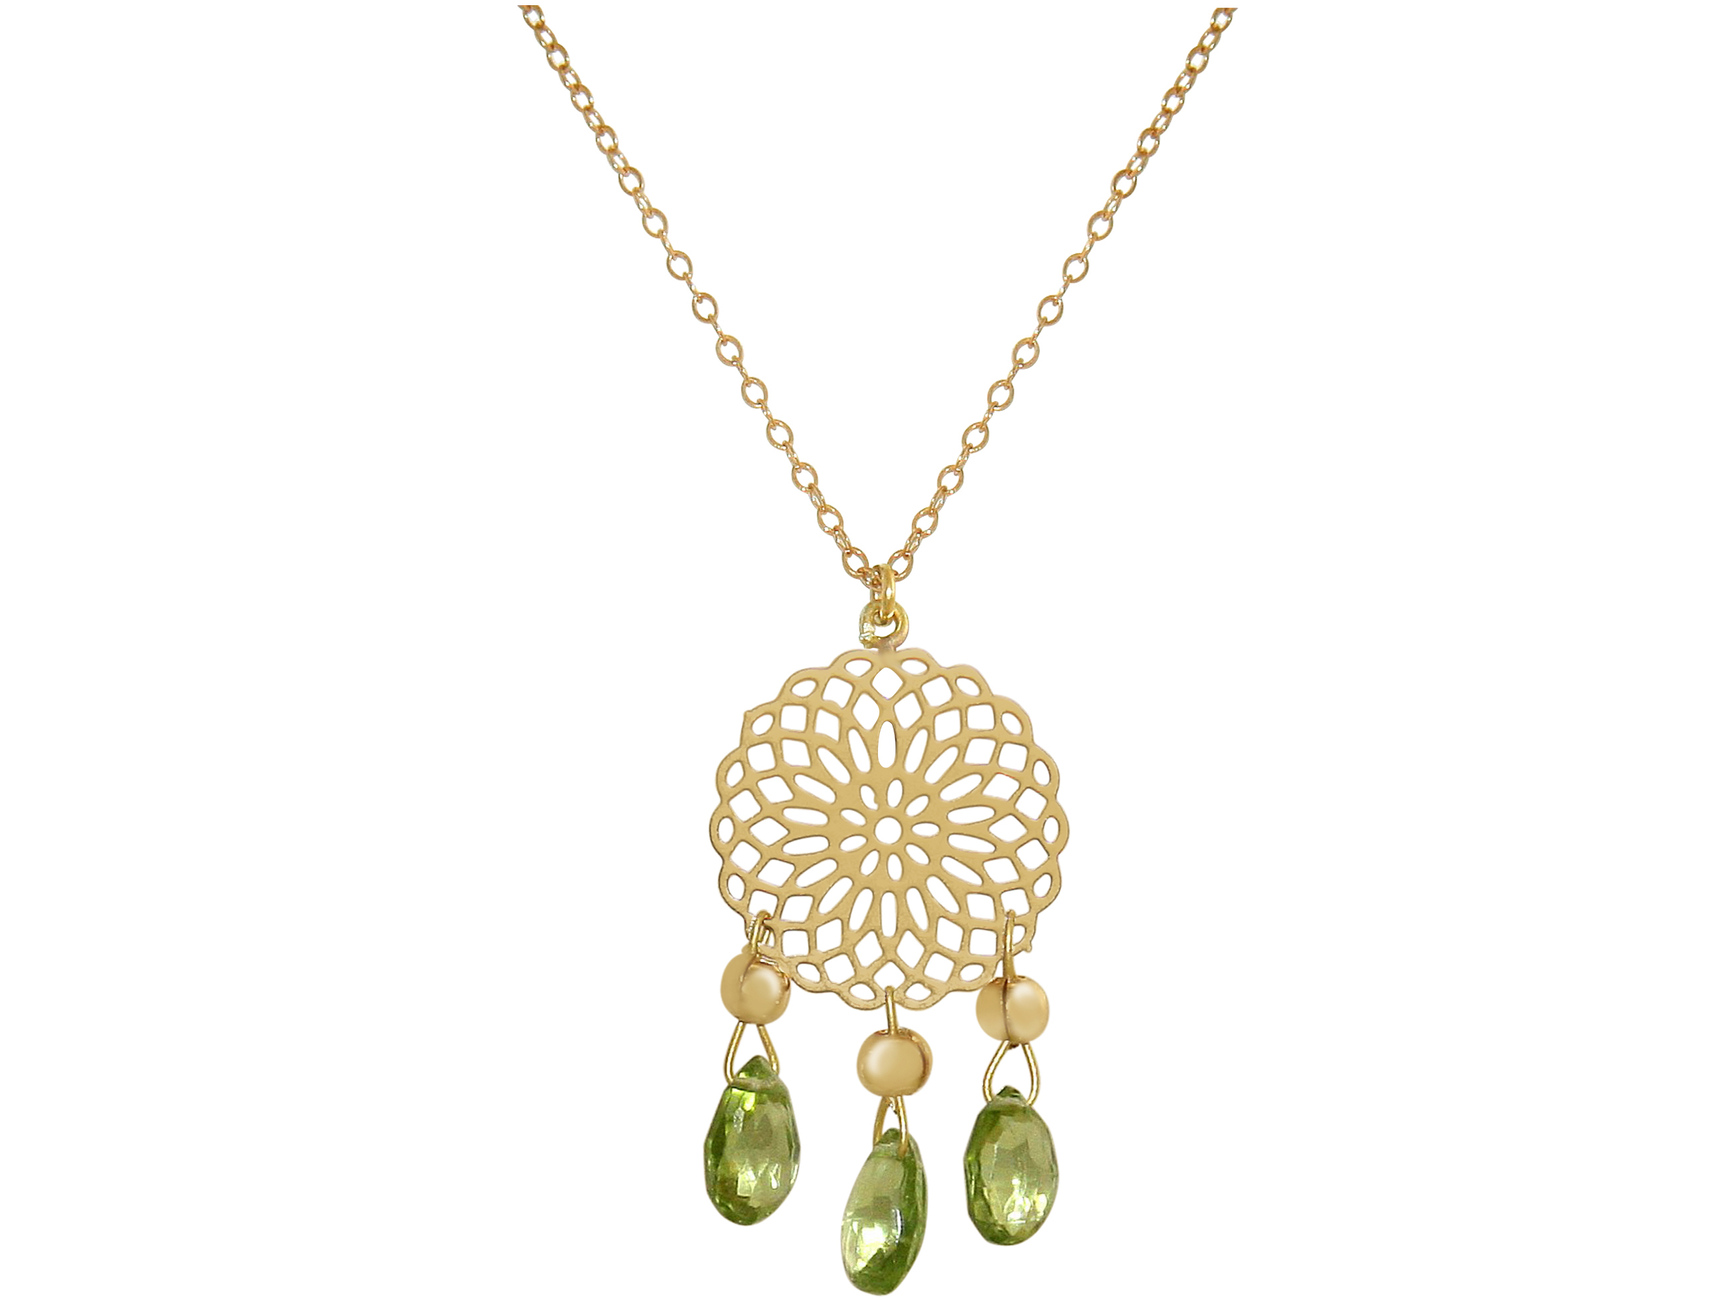 04a308a5a GEMSHINE Ladies necklace with Mandala and Peridot gemstones. Chandelier  pendant in Sterling silver, 18k gold plated or rose on a 60 cm chain.